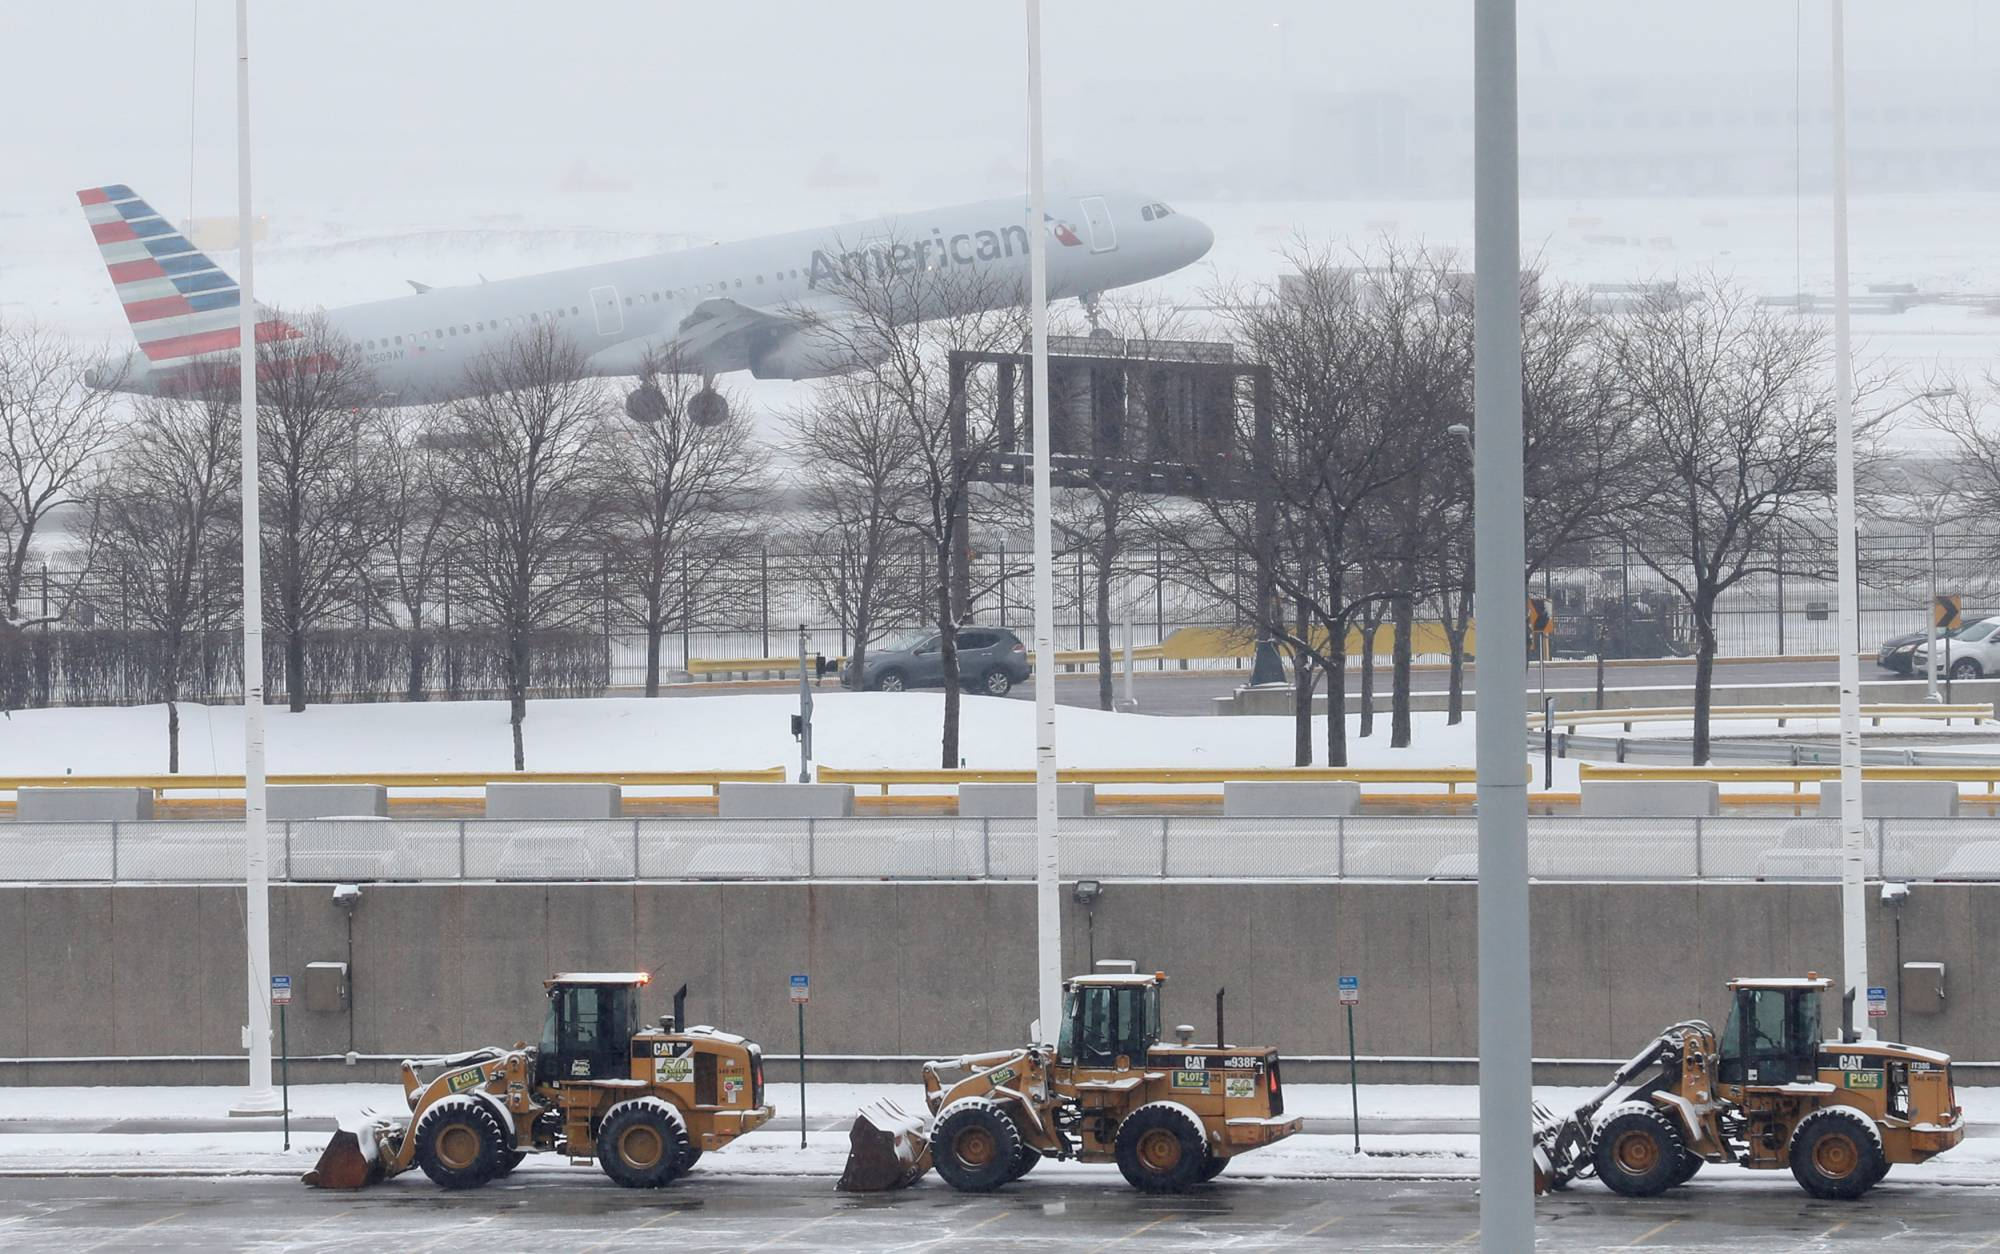 An American Airlines plane departs during the snowstorm at O'Hare International Airport in Chicago